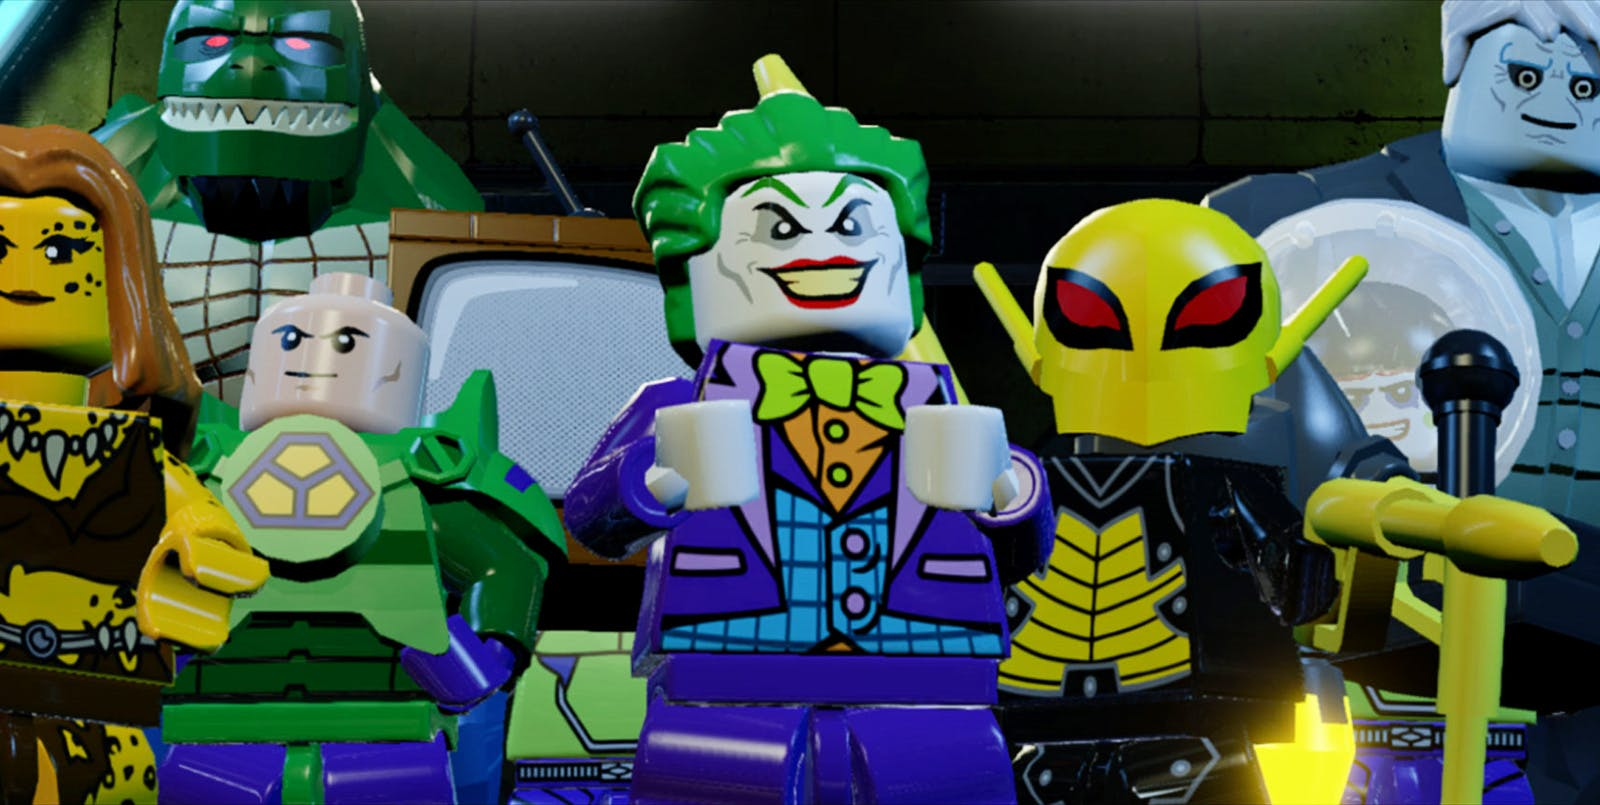 lego-dc-super-villains-image-10.jpg